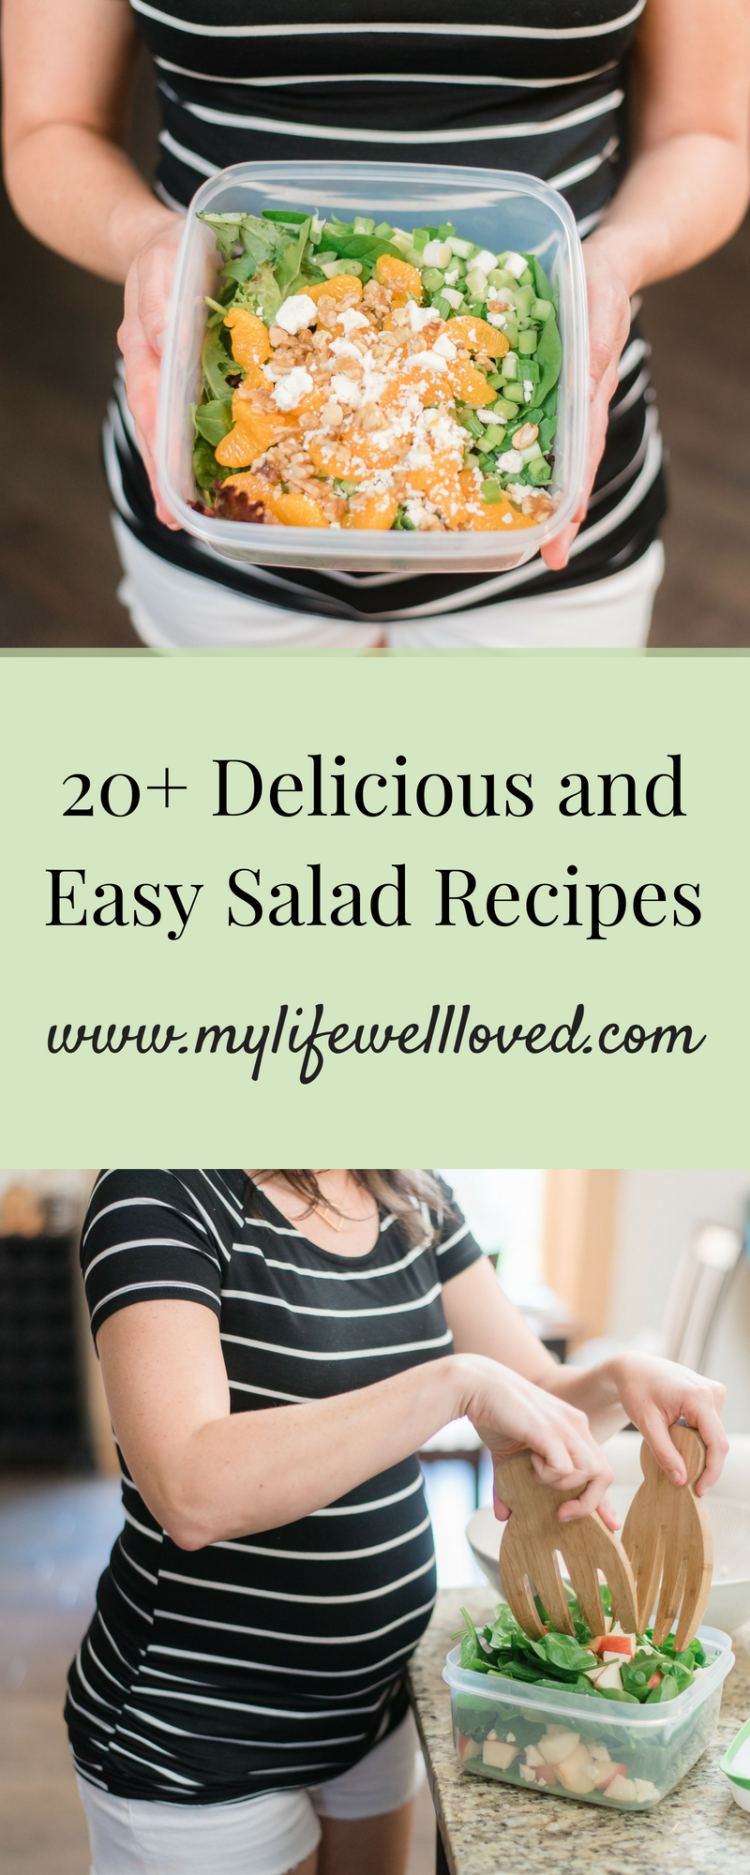 The best summer salads that are both easy and healthy for lunch or dinner by AL Lifestyle Blogger, Heather, at MyLifeWellLoved.com // #healthy #summersalads #saladrecipes #easyrecipe